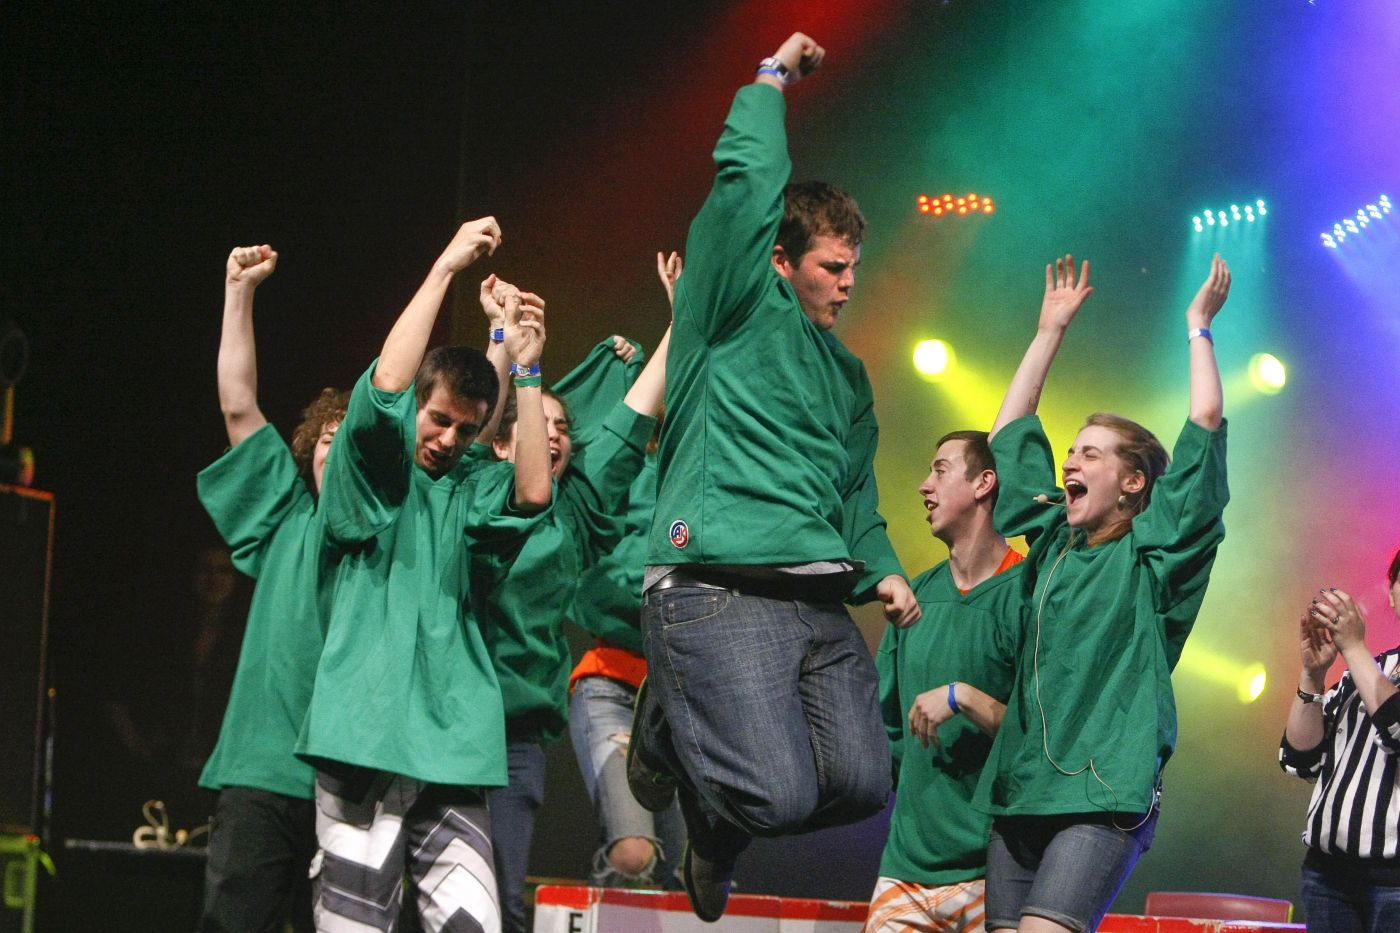 Colour photograph of a group of seven teens wearing green jerseys, celebrating a victory on stage. The young man in the foreground of the photo is jumping with joy, his right fist raised over his head.